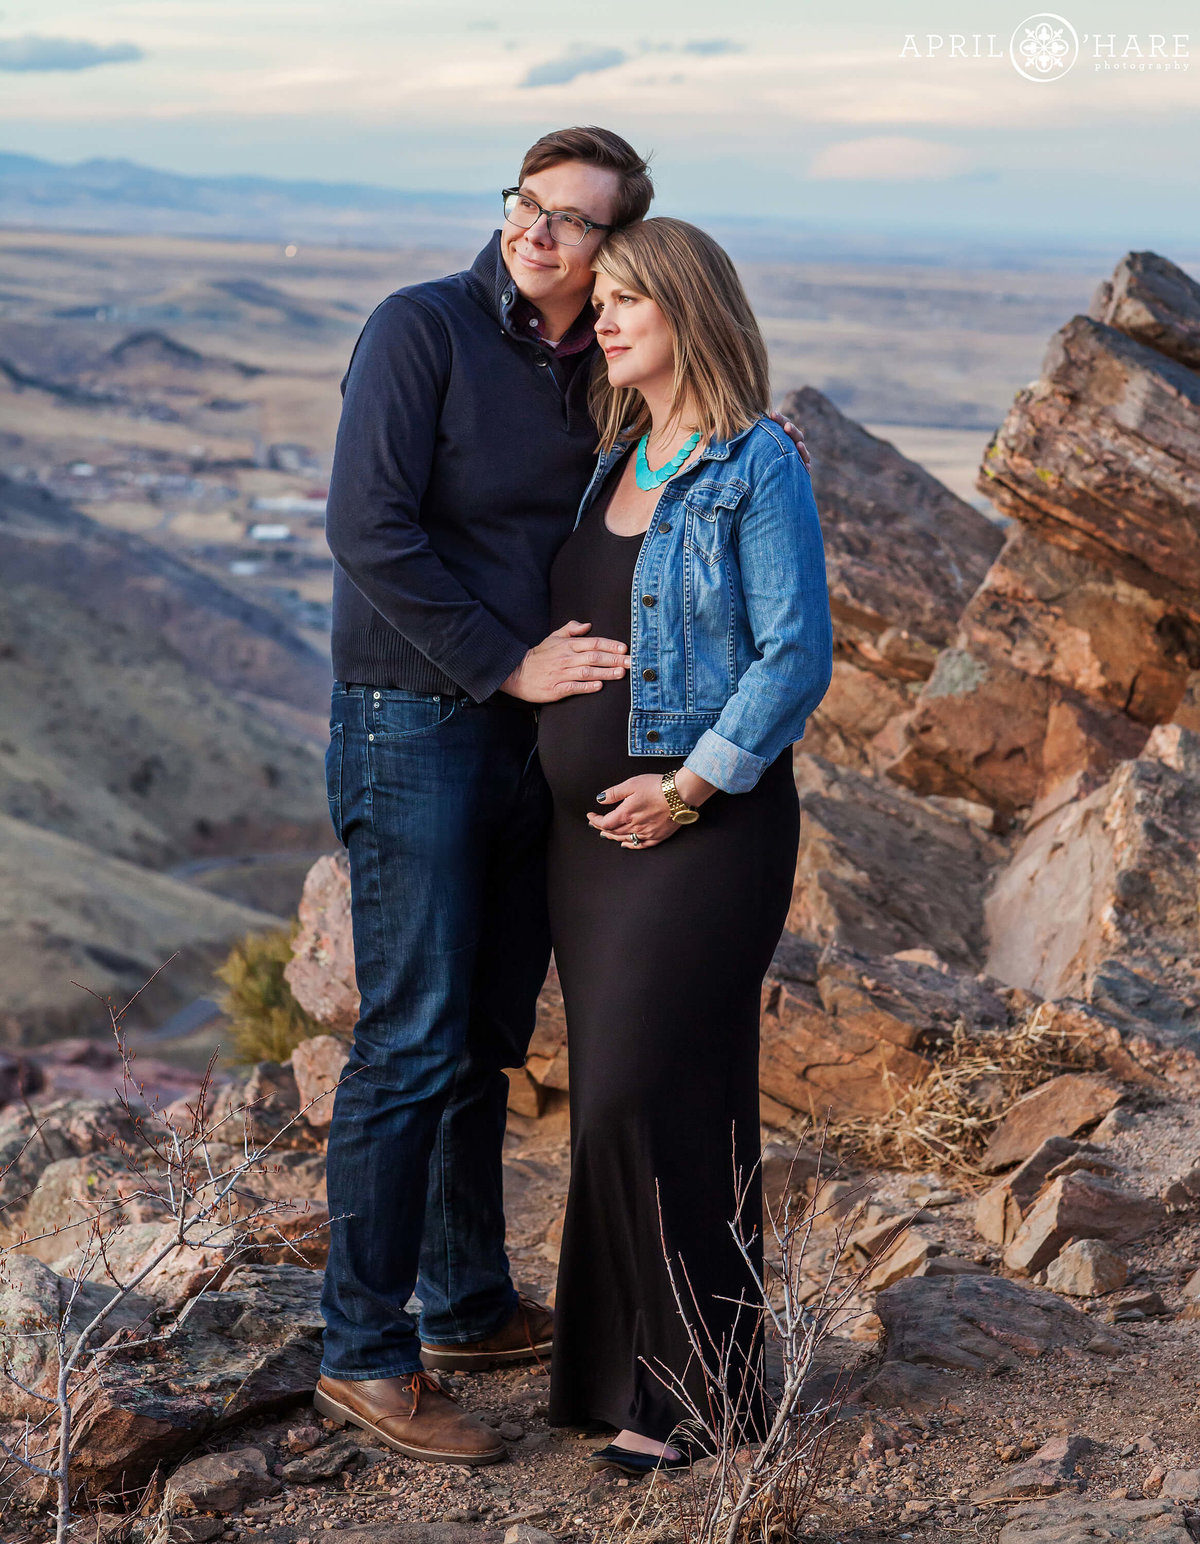 Denver Maternity Photographer at Lookout Mountain Golden Colorado